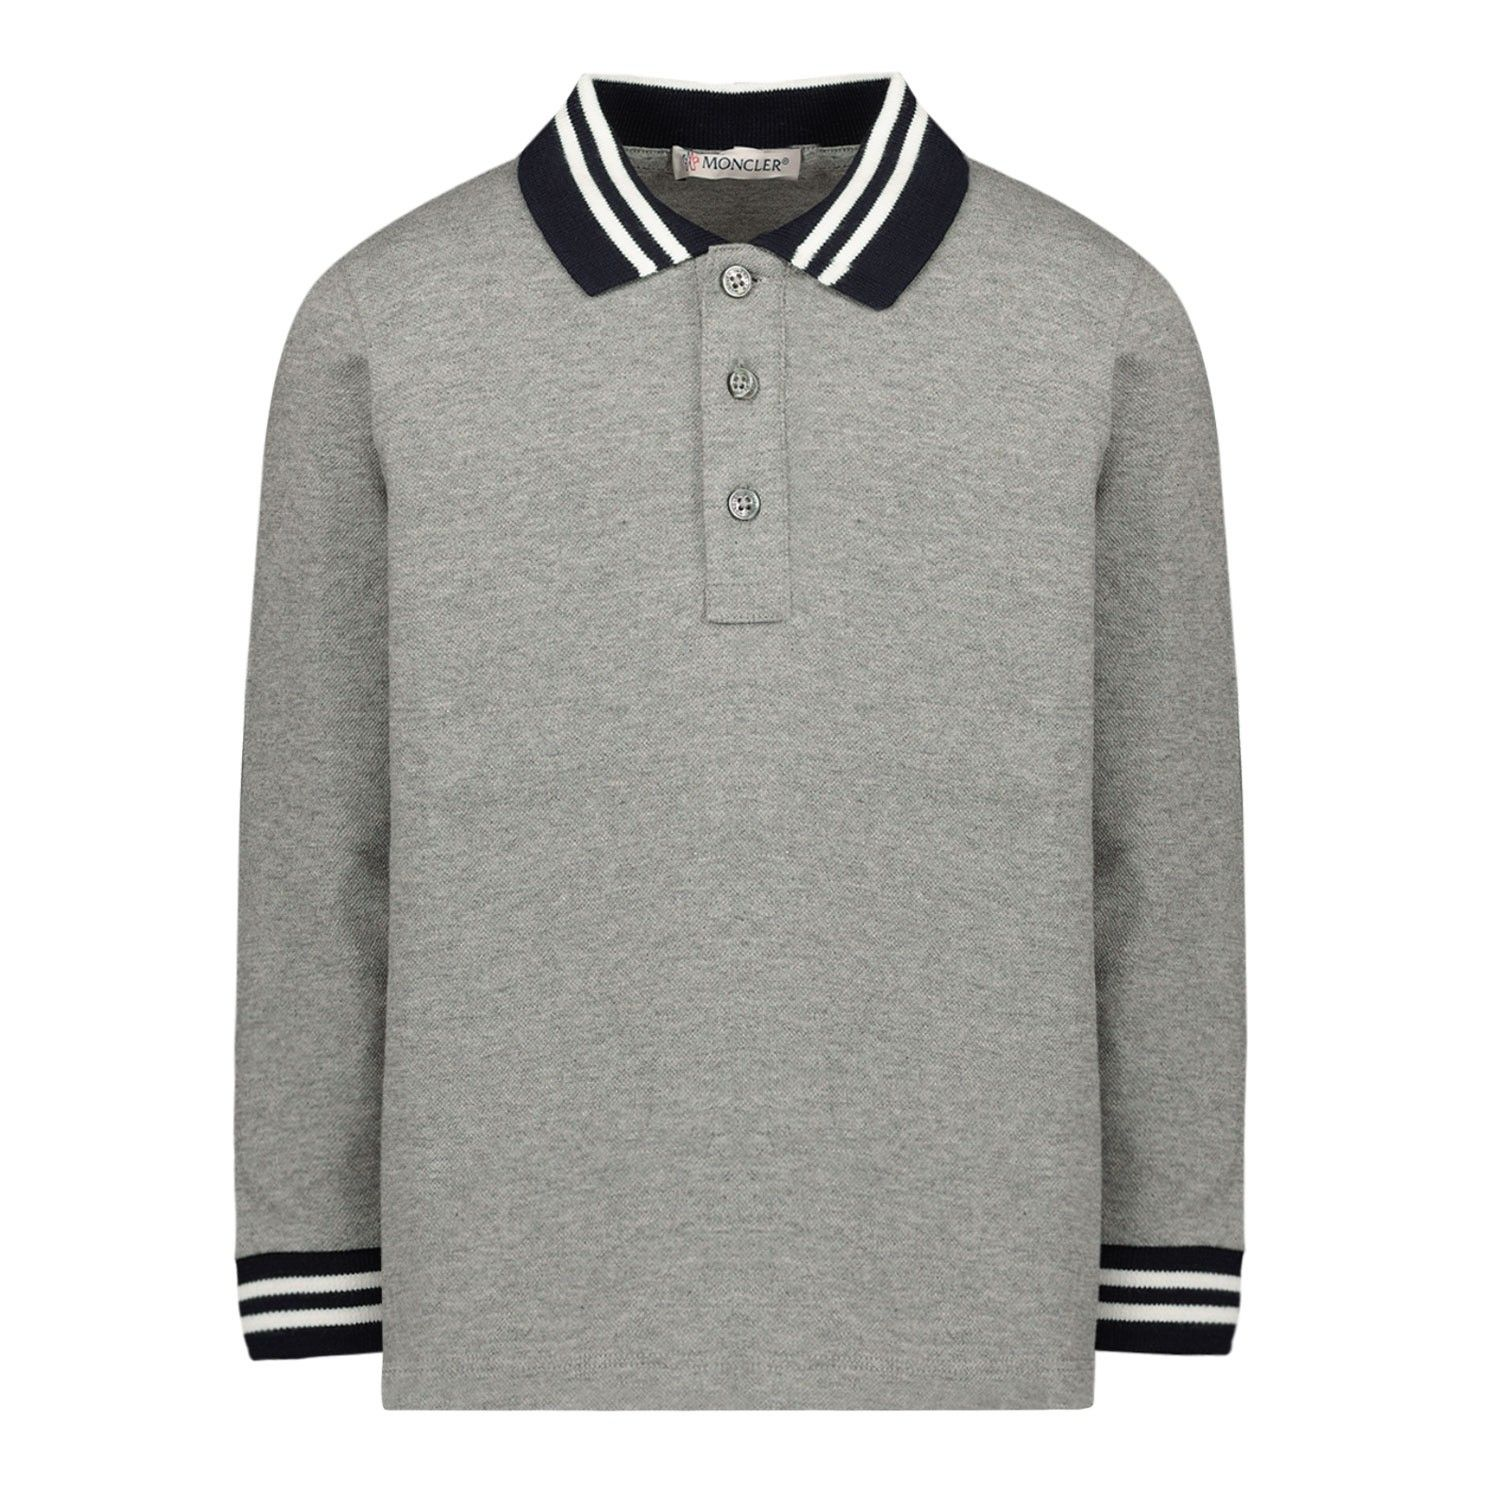 Picture of Moncler 8B70320 baby poloshirt light gray